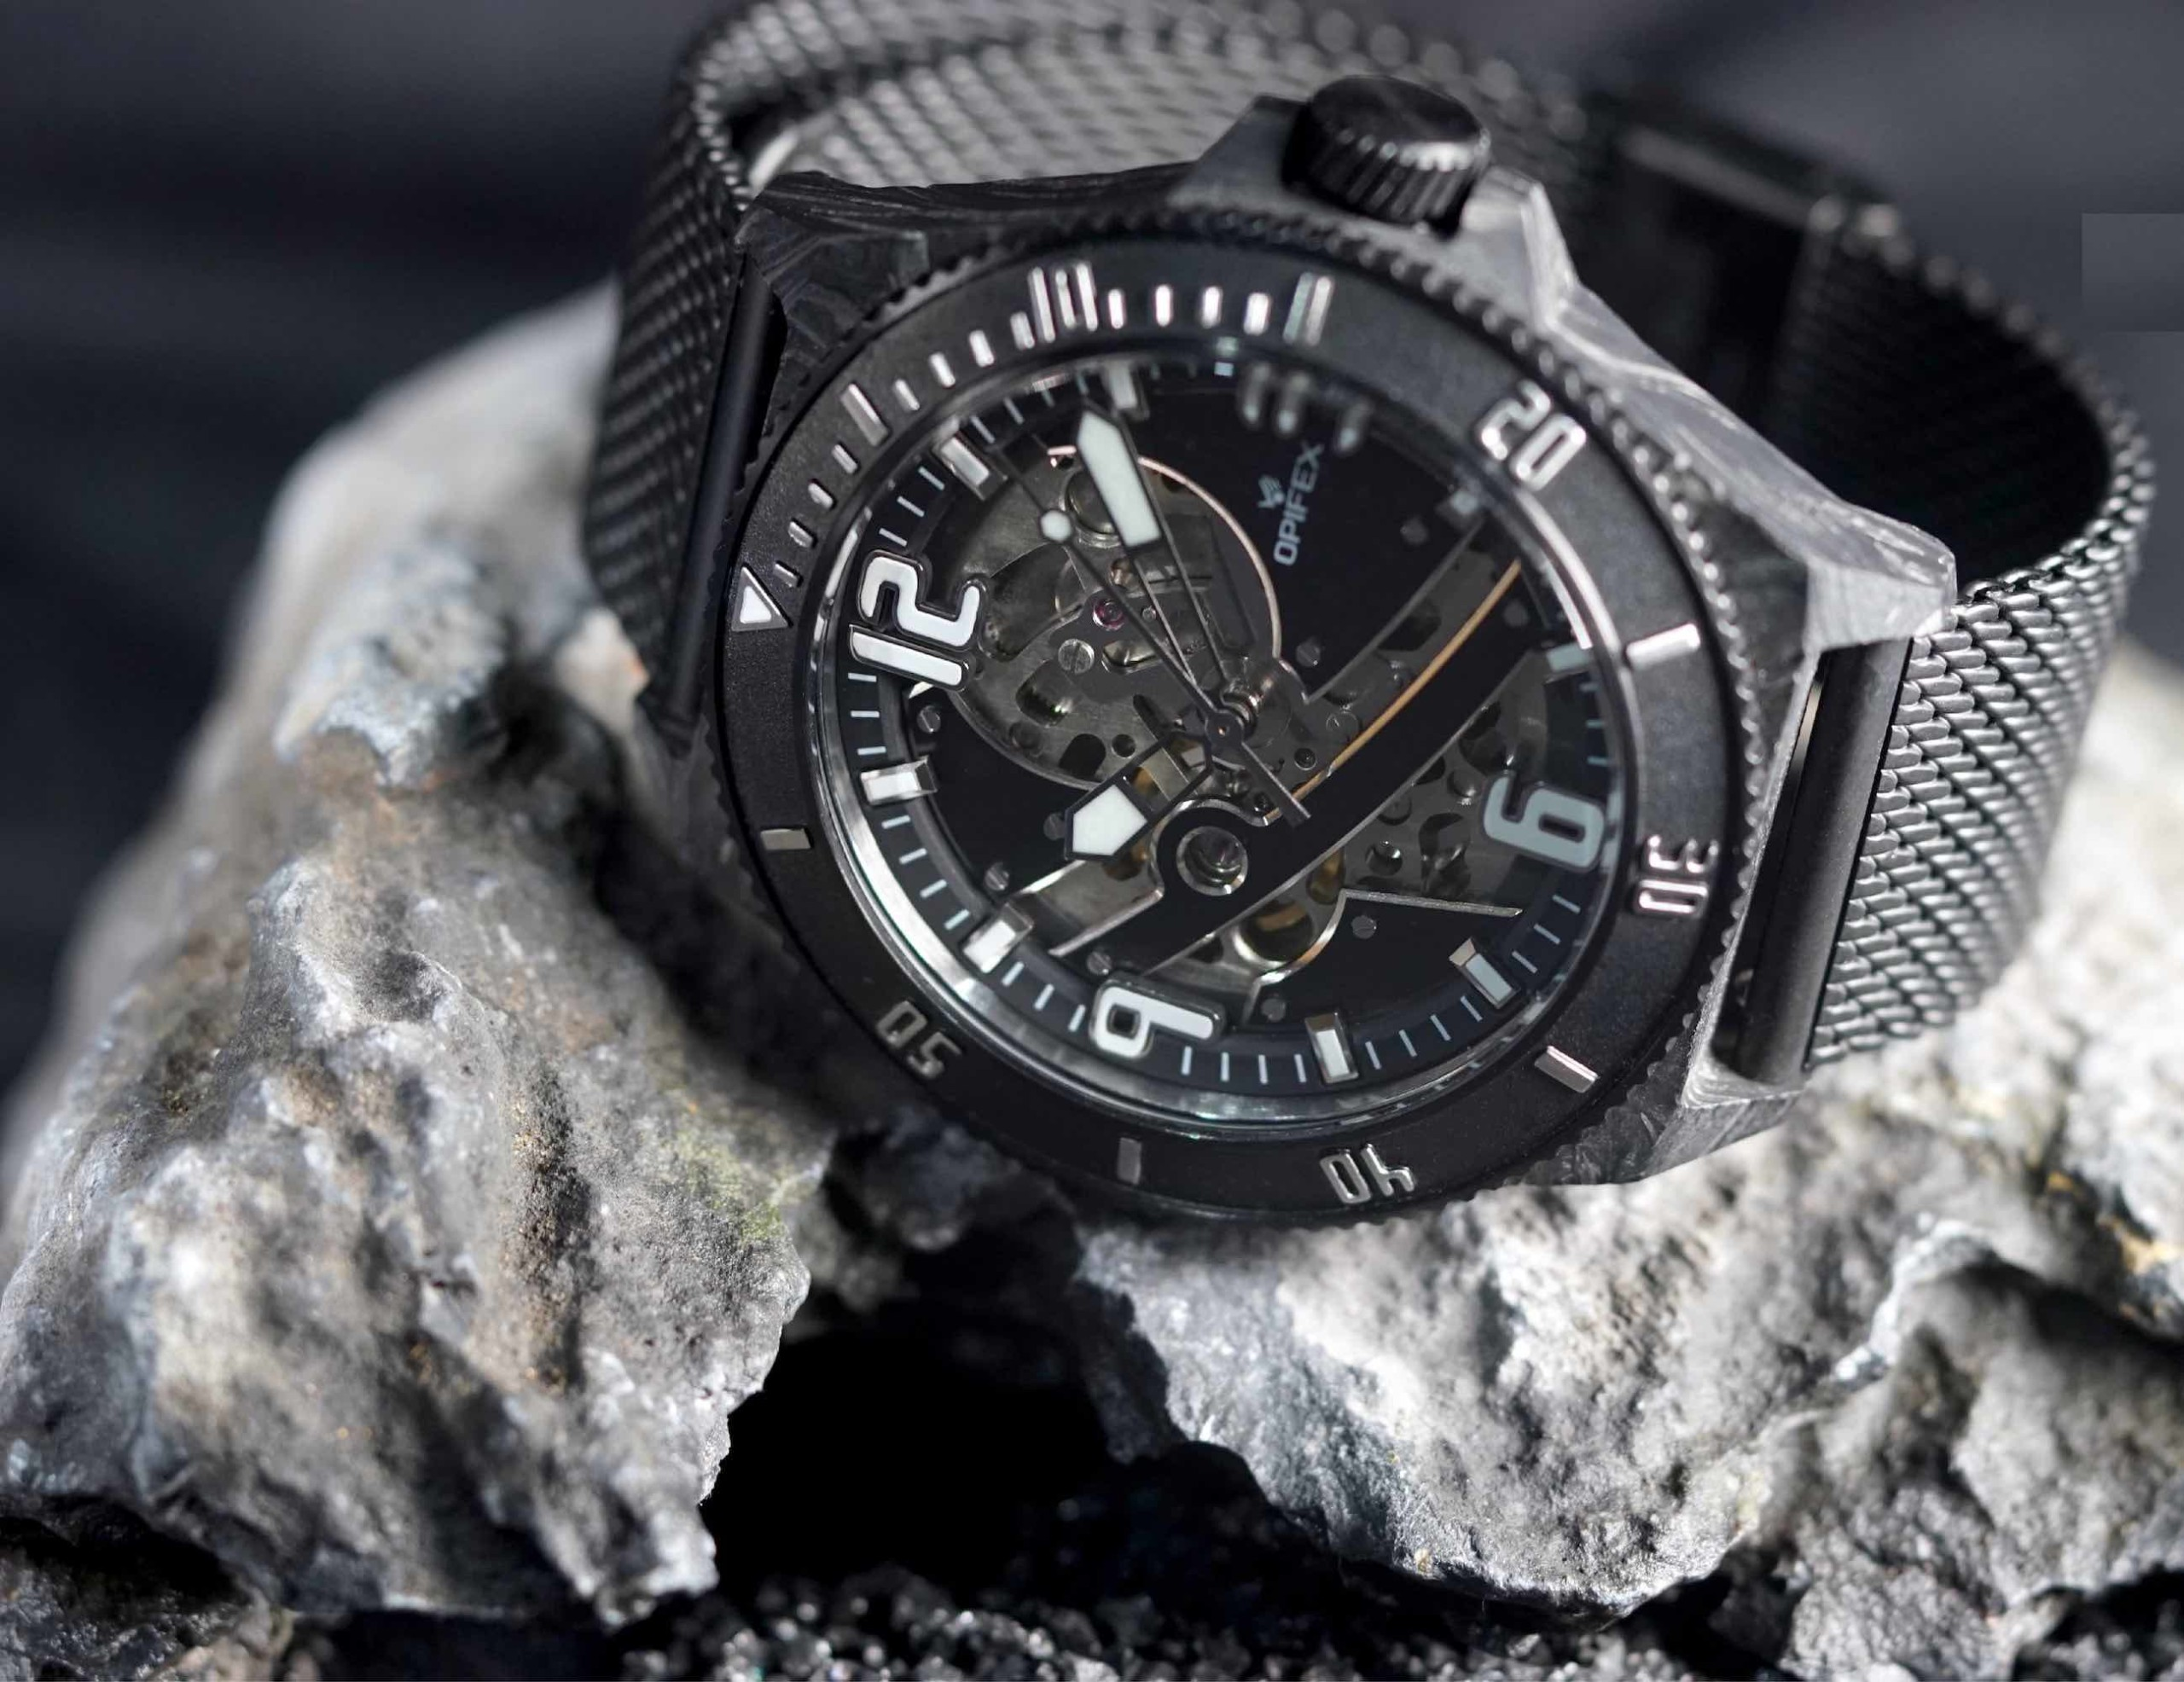 OPIFEX TWO Skeleton Automatic Watch is water resistant to 100 meters